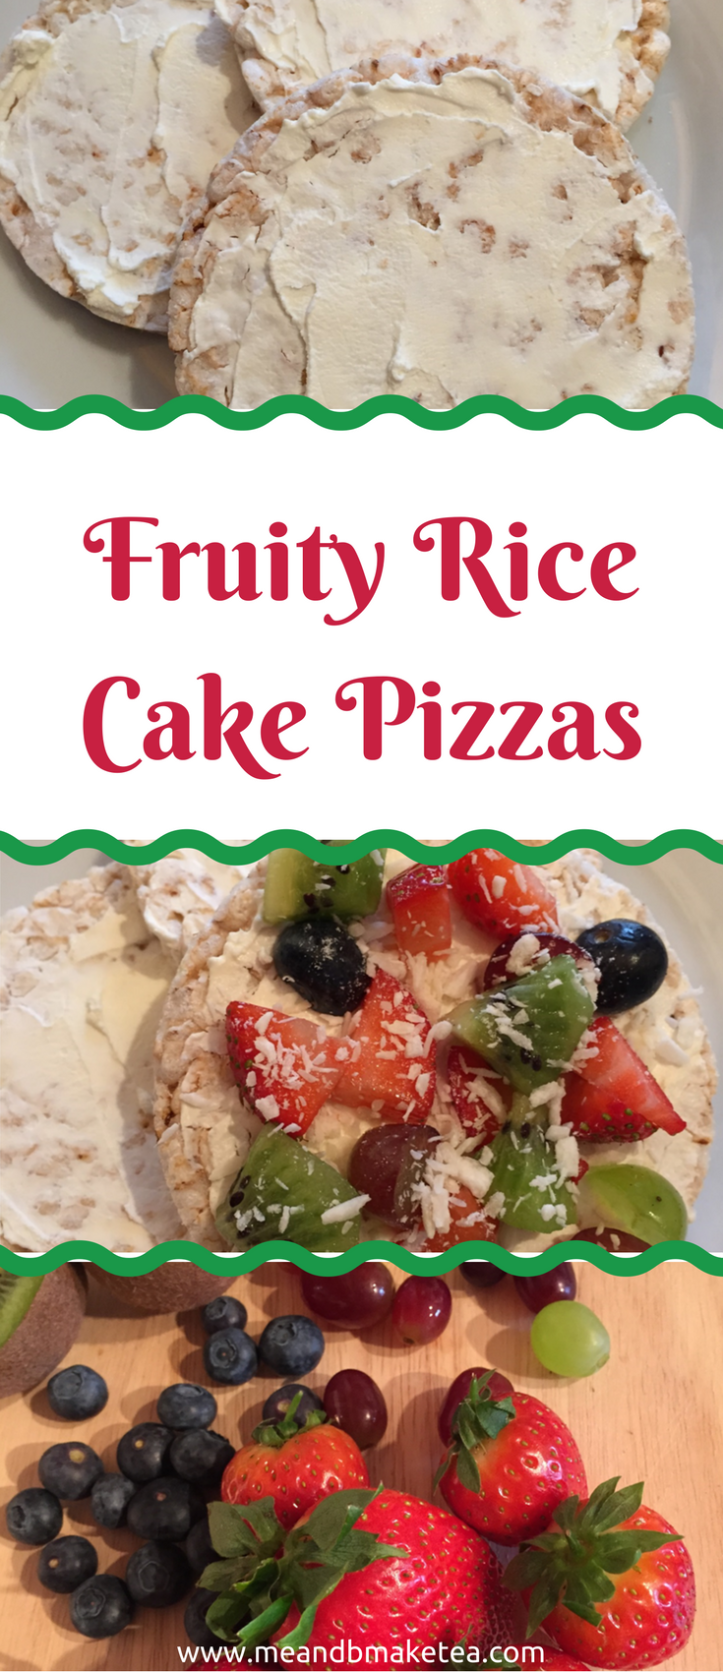 rice cakes toddler snacks how to make pizzas from rice cakes weaning fun food picky eaters fussyy my toddler wont eat